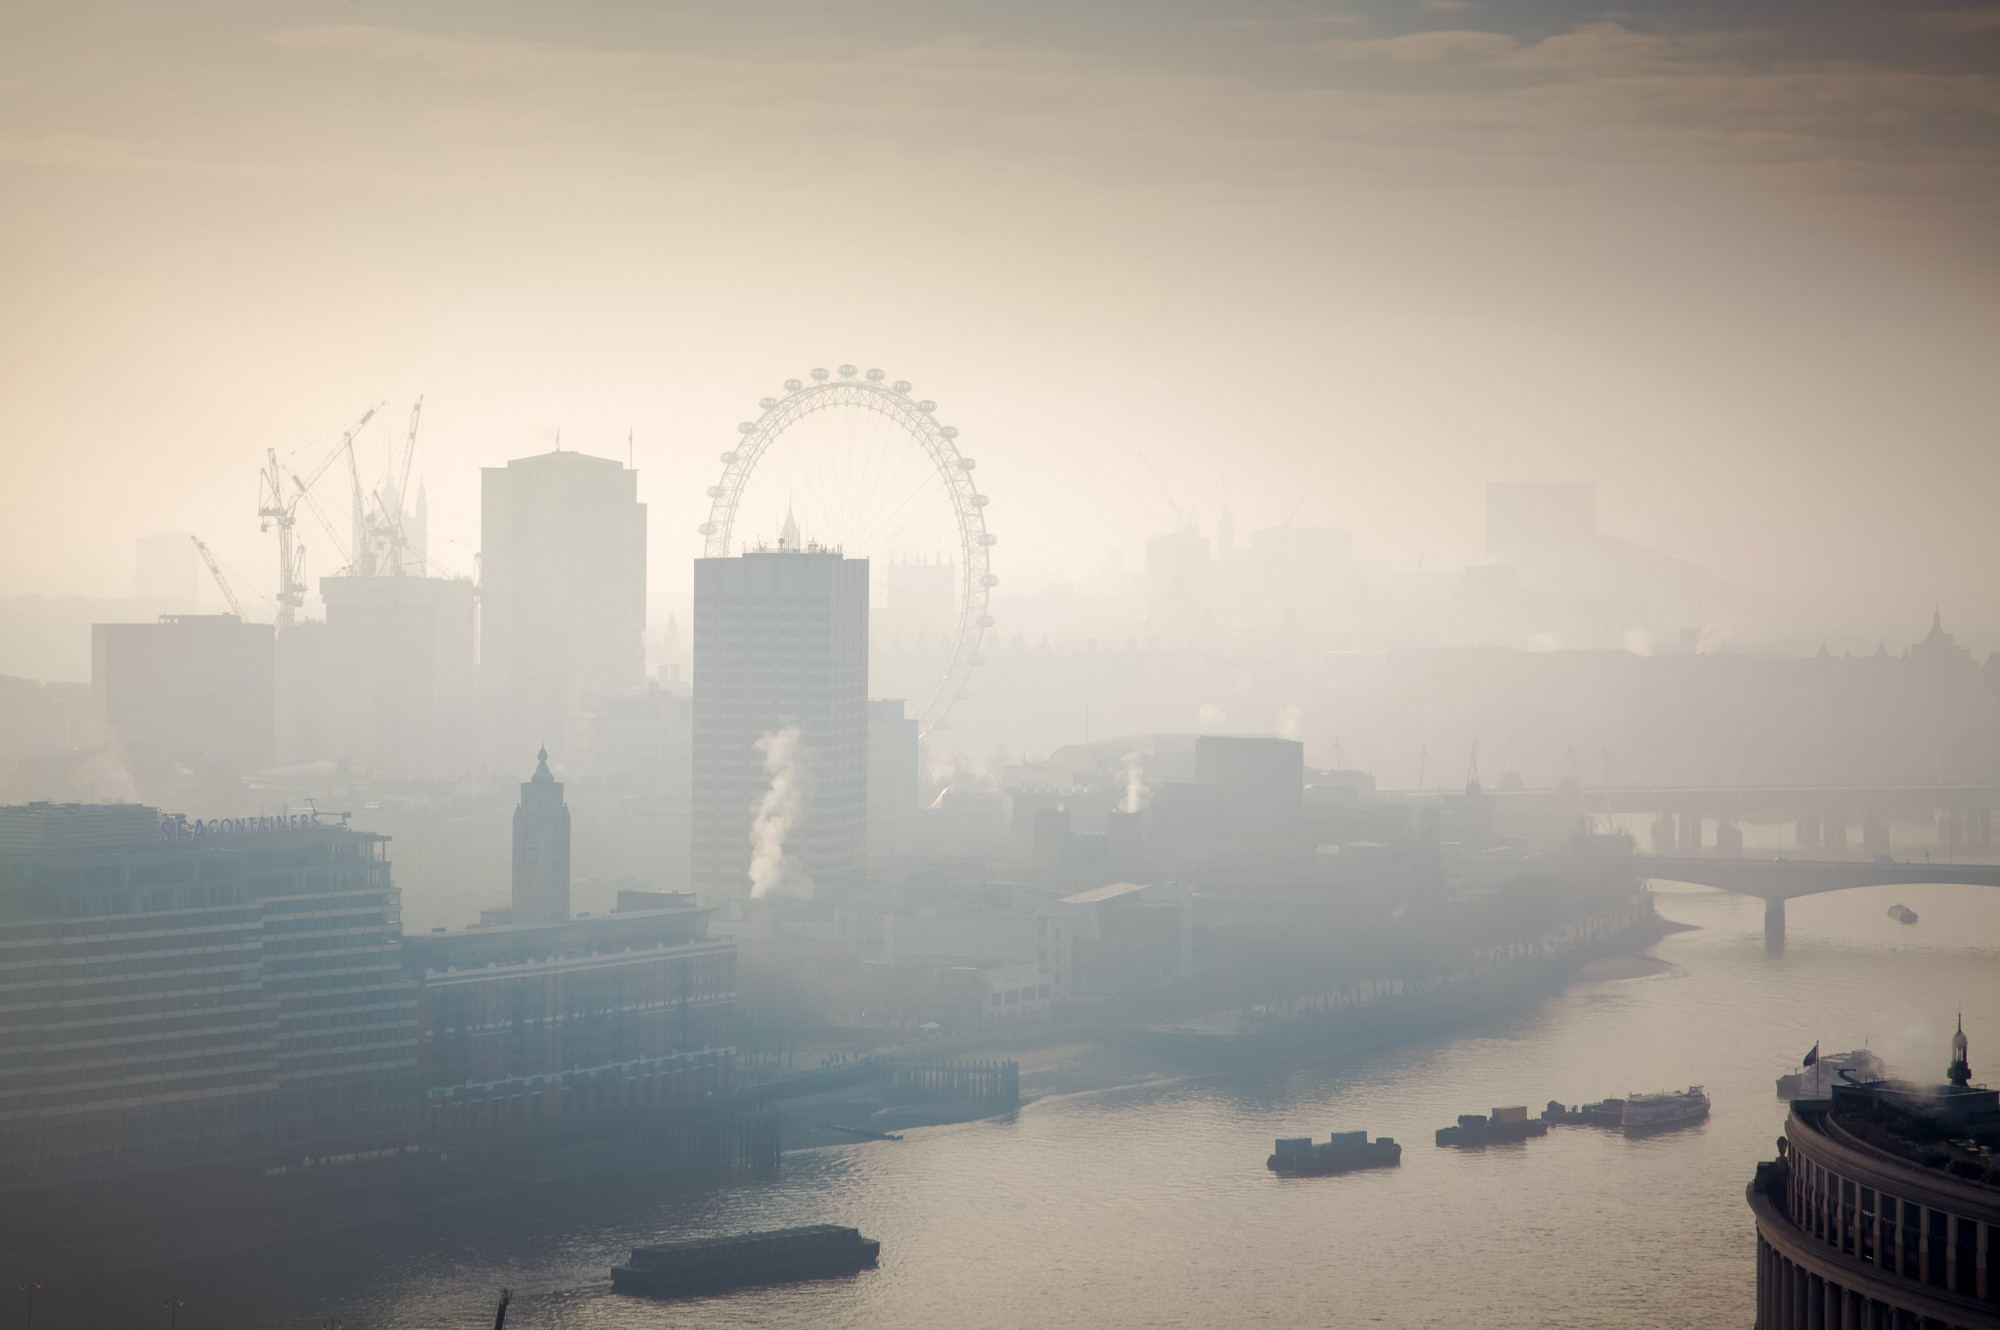 air pollution problem looming large Narrowing it down: buying a serious mask because air pollution is becoming a looming and obvious problem now by johnmelendez.